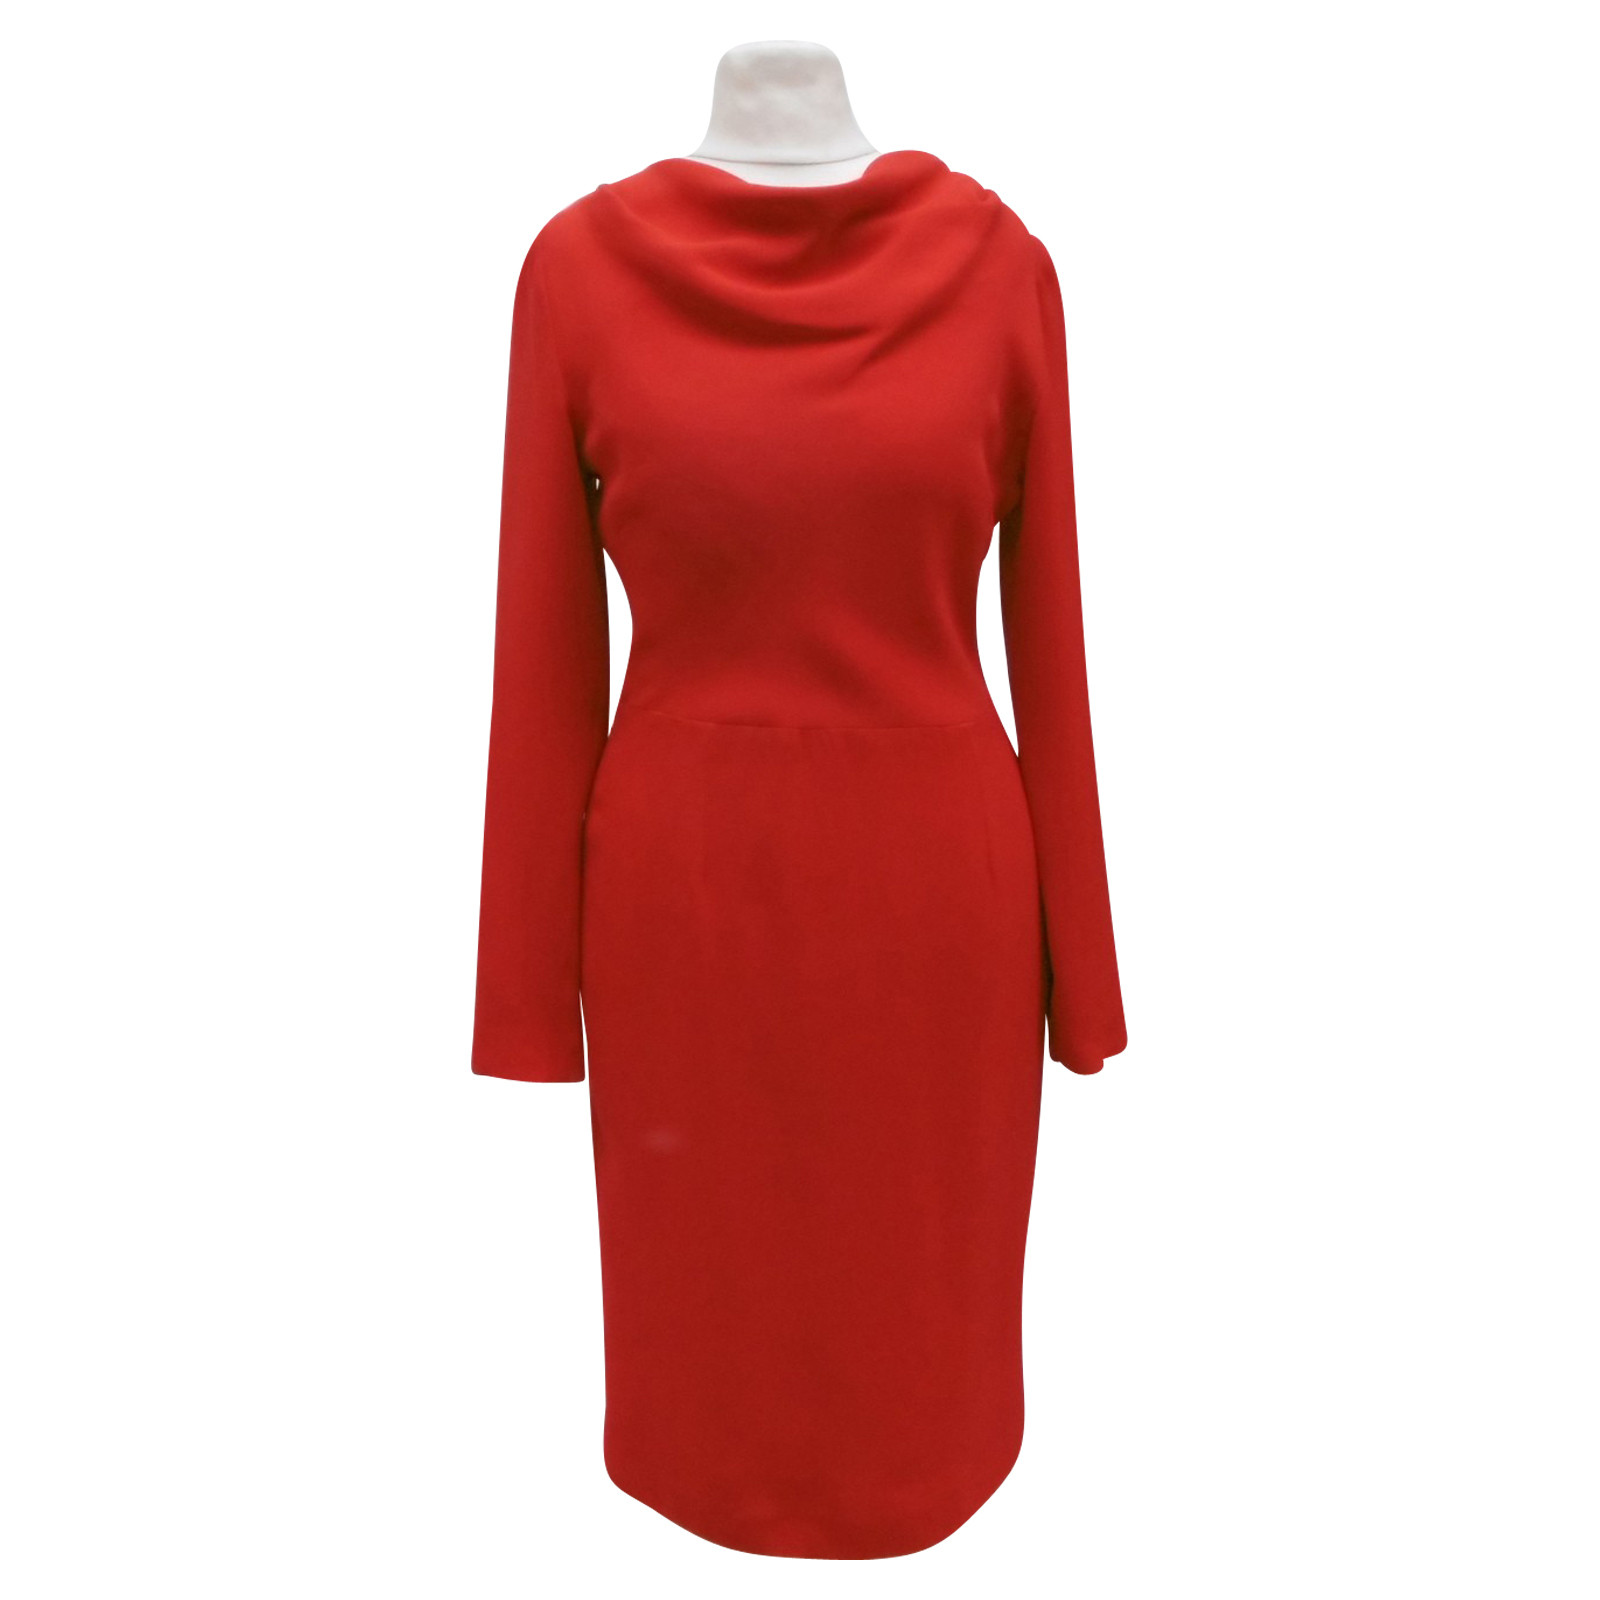 Christian Dior Rotes Kleid - Second Hand Christian Dior Rotes